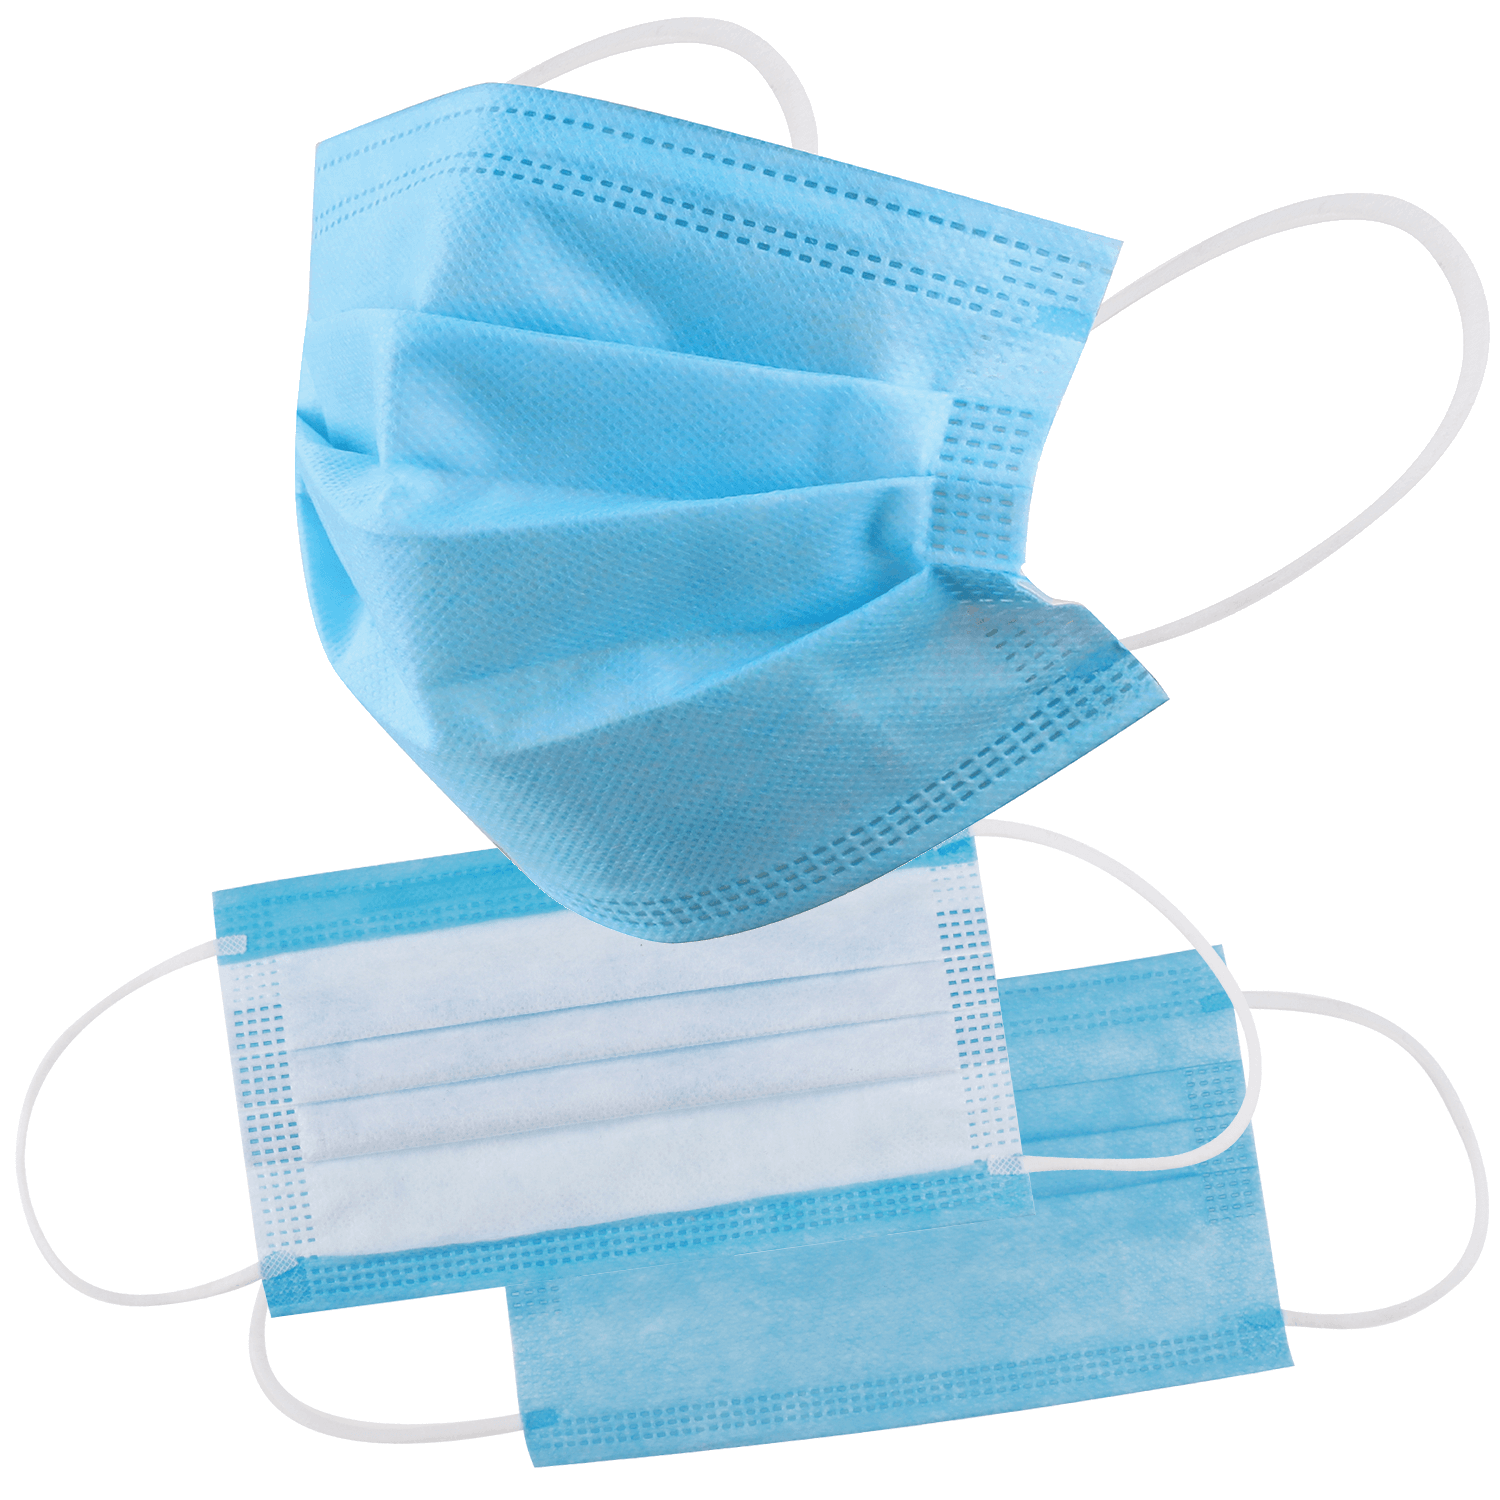 Disposable Protective Face Masks